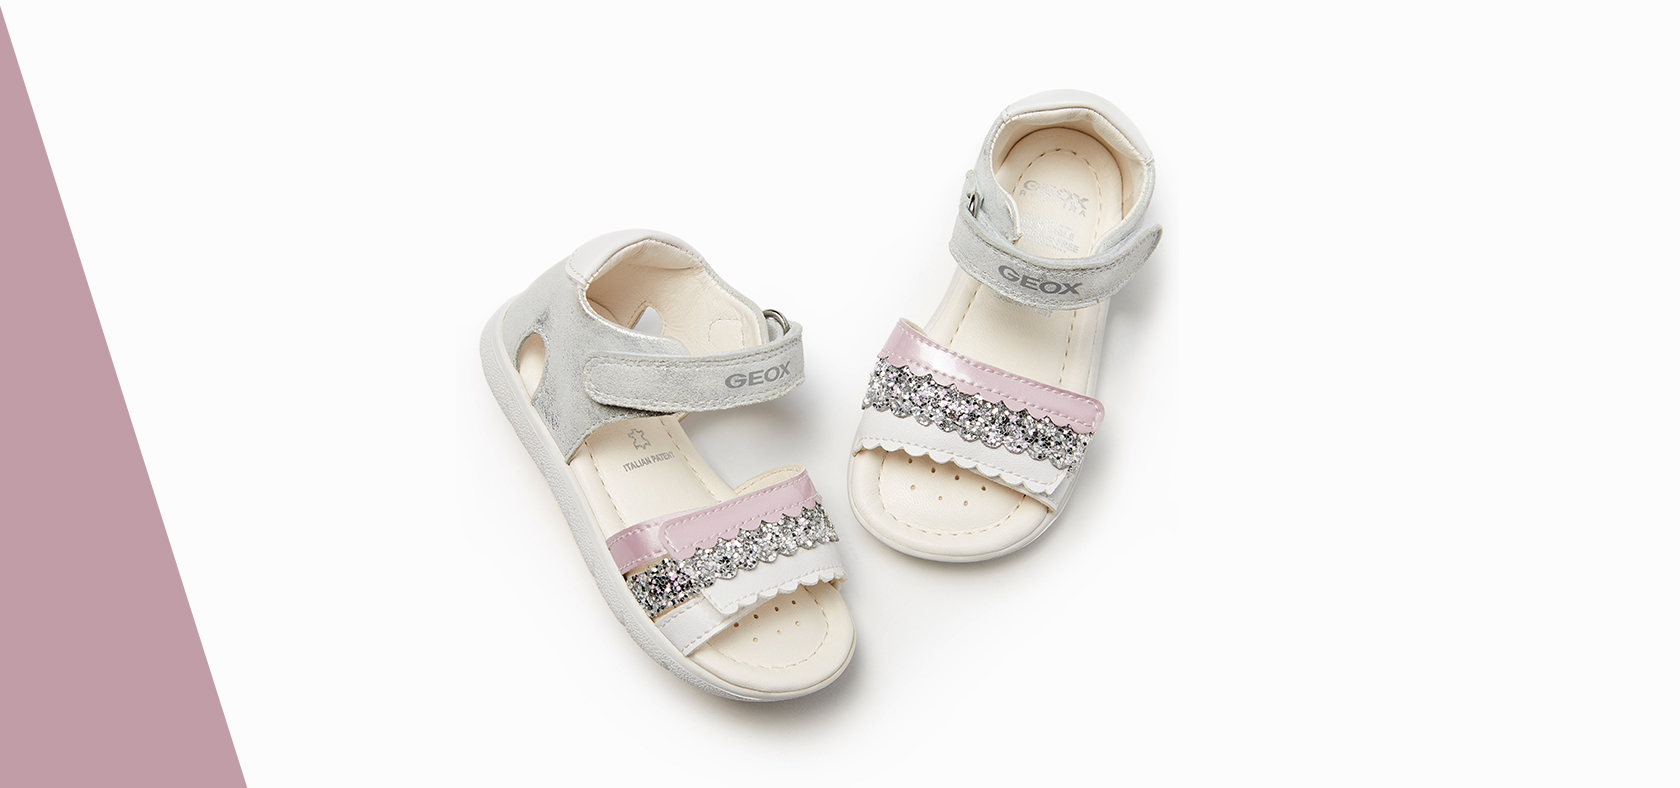 Baby's Baby's Lovely Sandals Lovely CoolGeox And Sandals wOkPX8n0